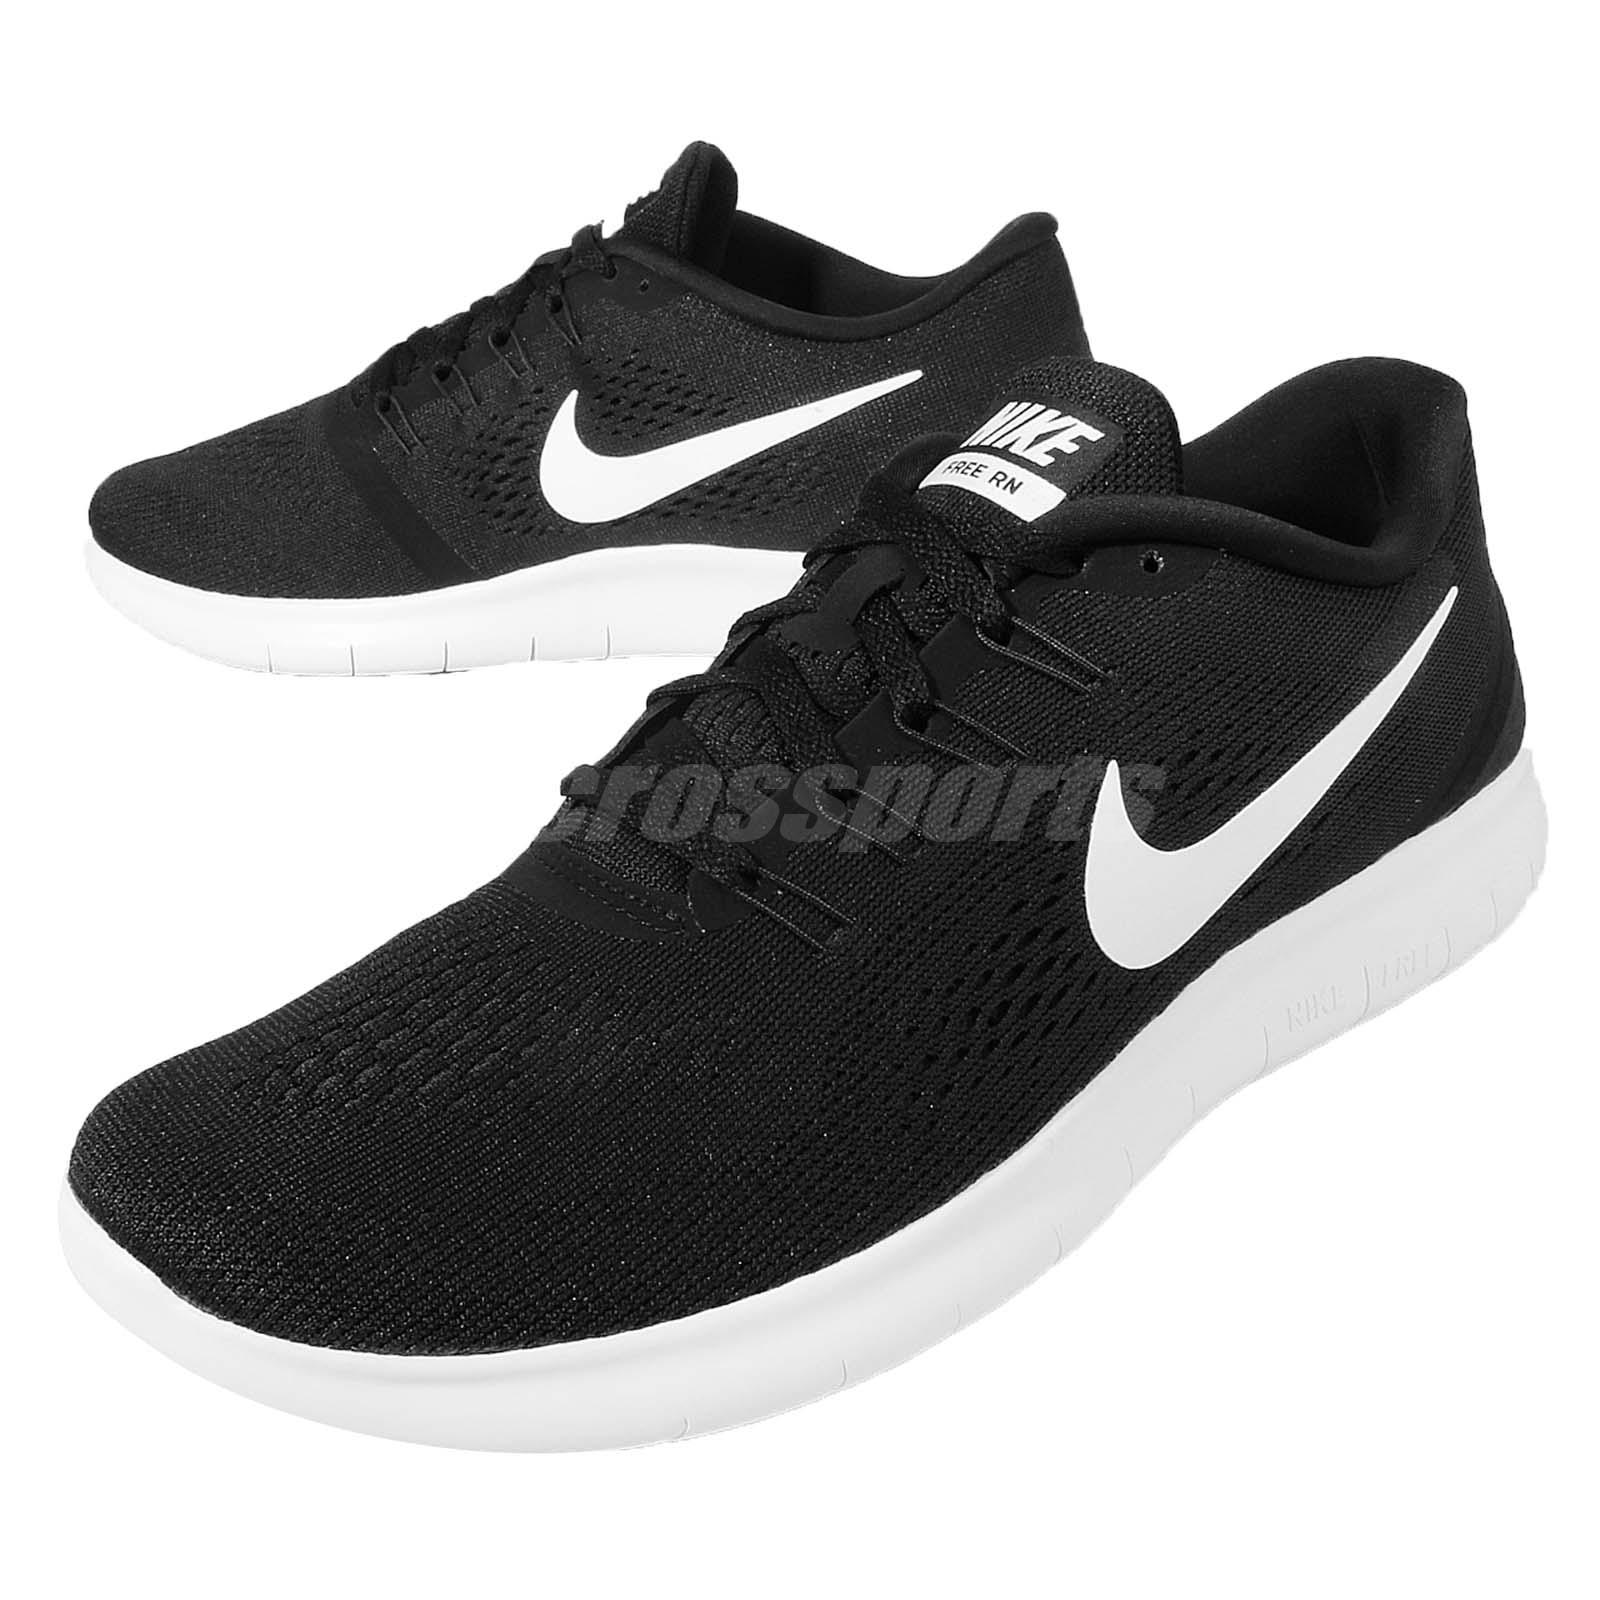 nike free rn run black white mens running shoes trainers. Black Bedroom Furniture Sets. Home Design Ideas